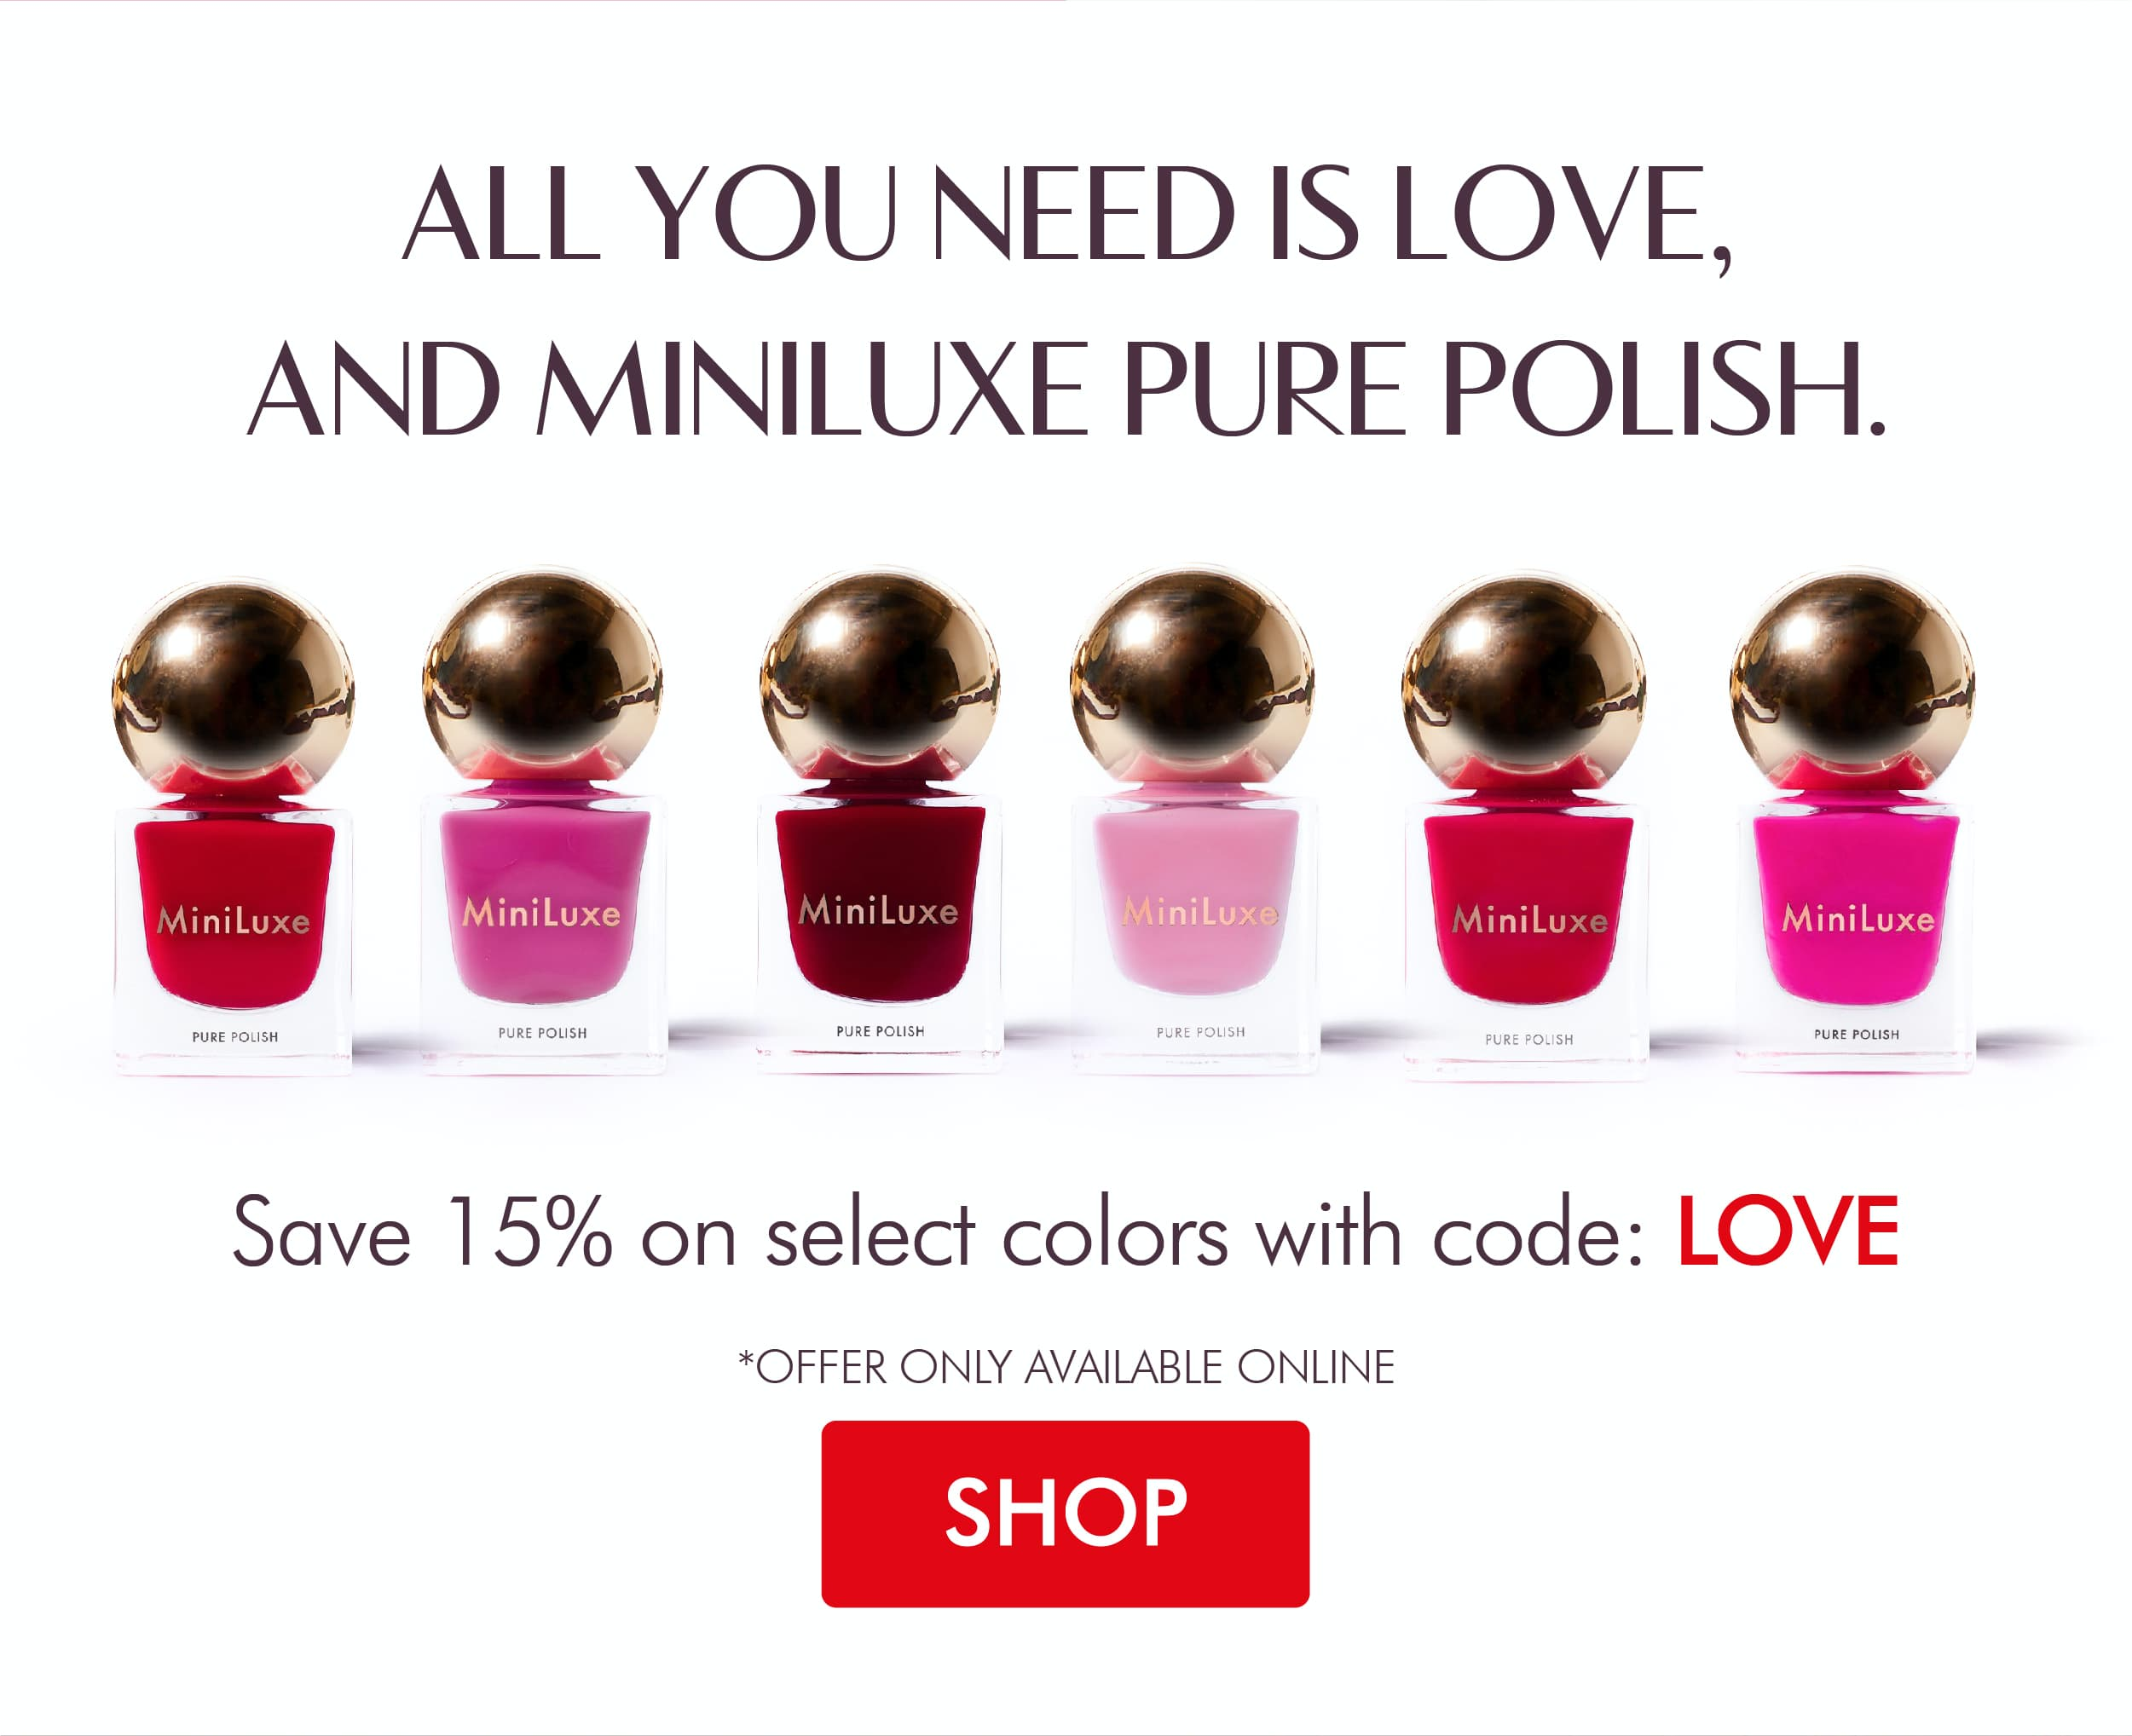 Save 15% On Select Colors With Code: LOVE